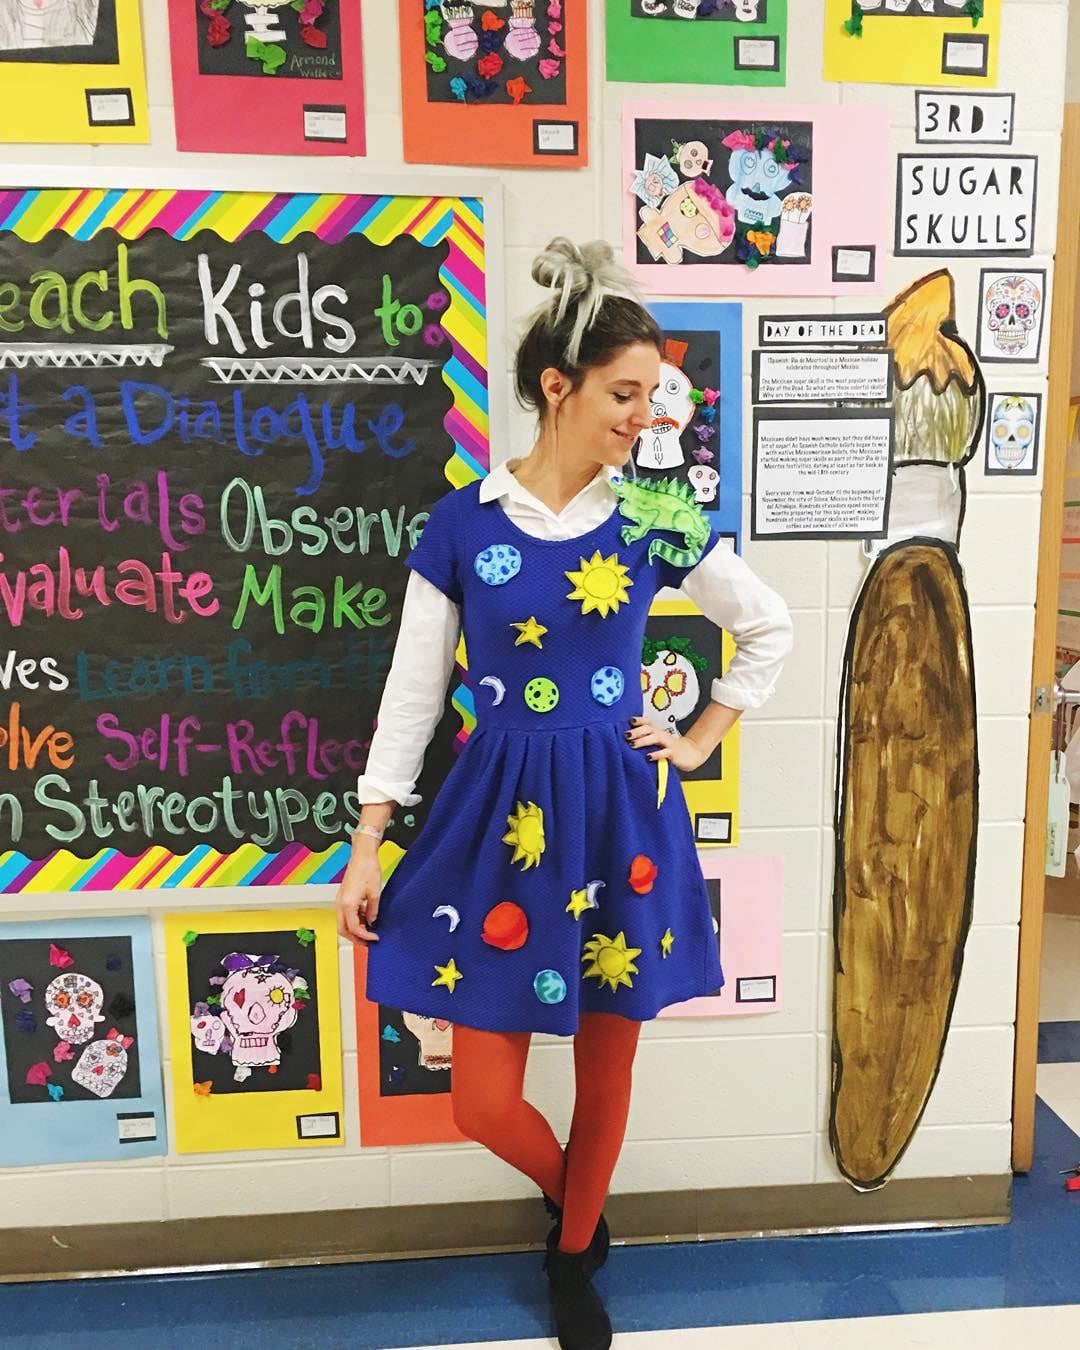 Wacky Wednesday Dr. Seuss Ms. Frizzle | See This...